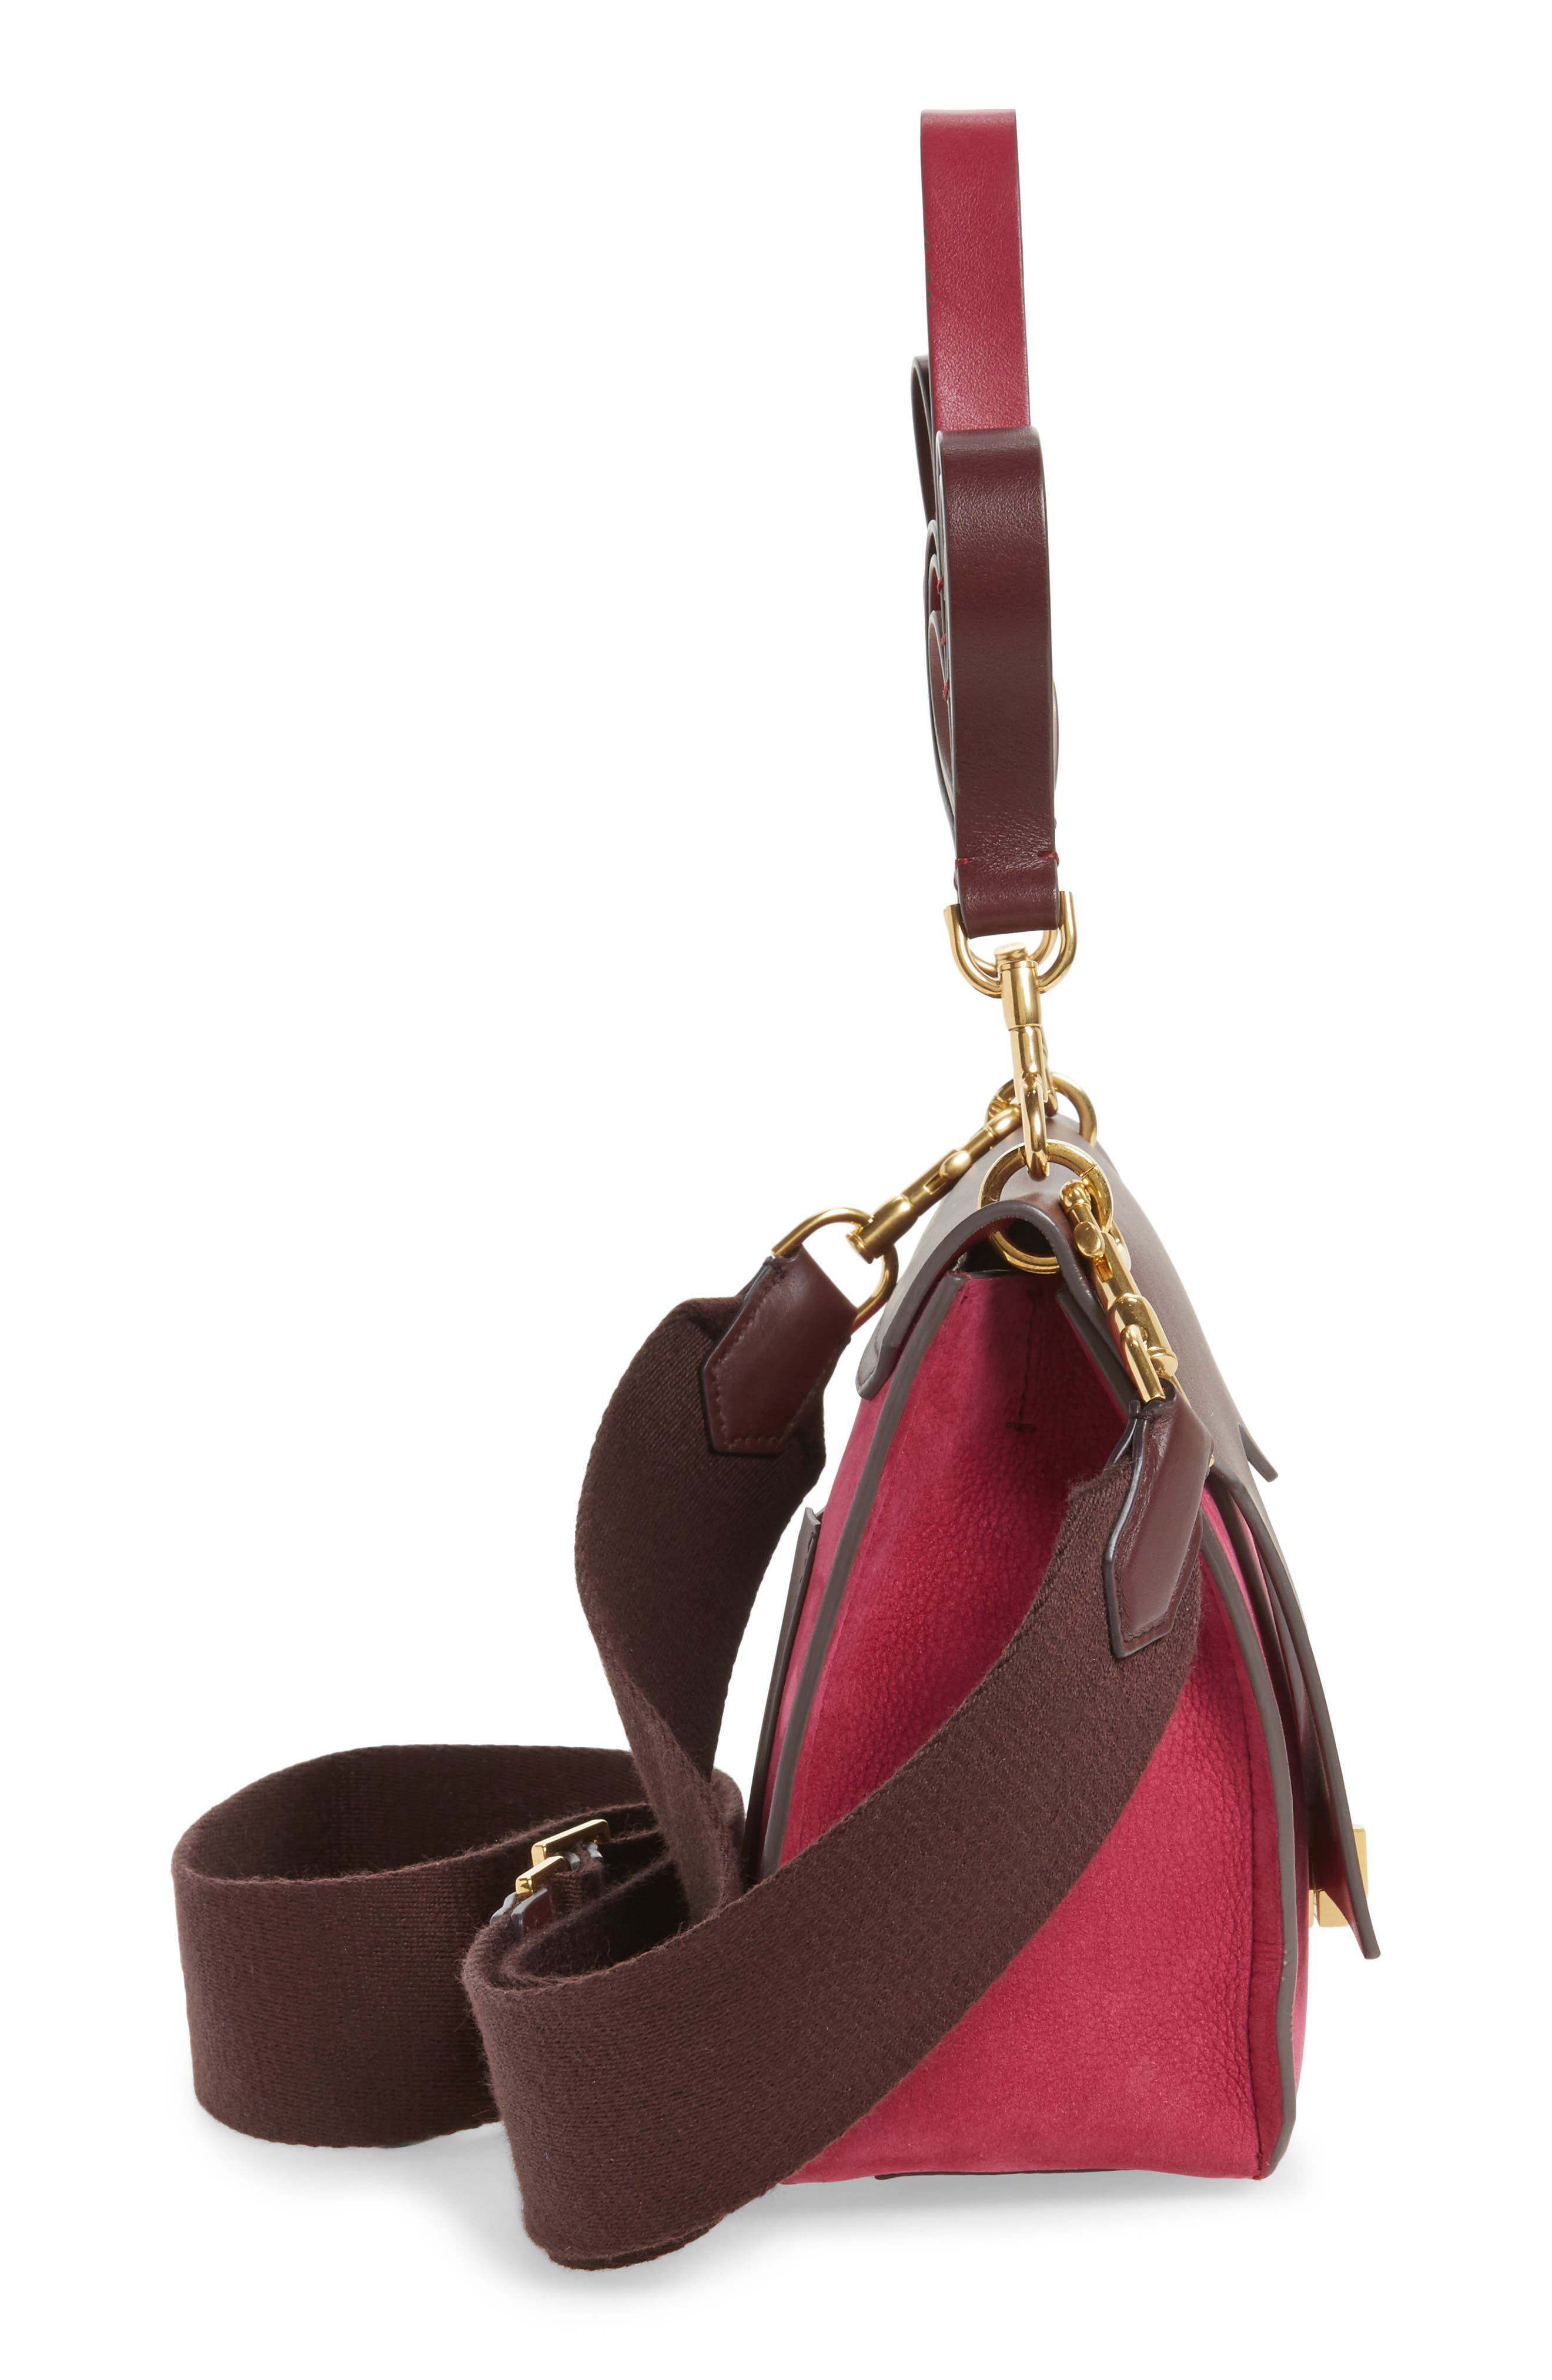 Extra Small Bathhurst Heart Leather Shoulder Bag,                             Alternate thumbnail 5, color,                             Raspberry